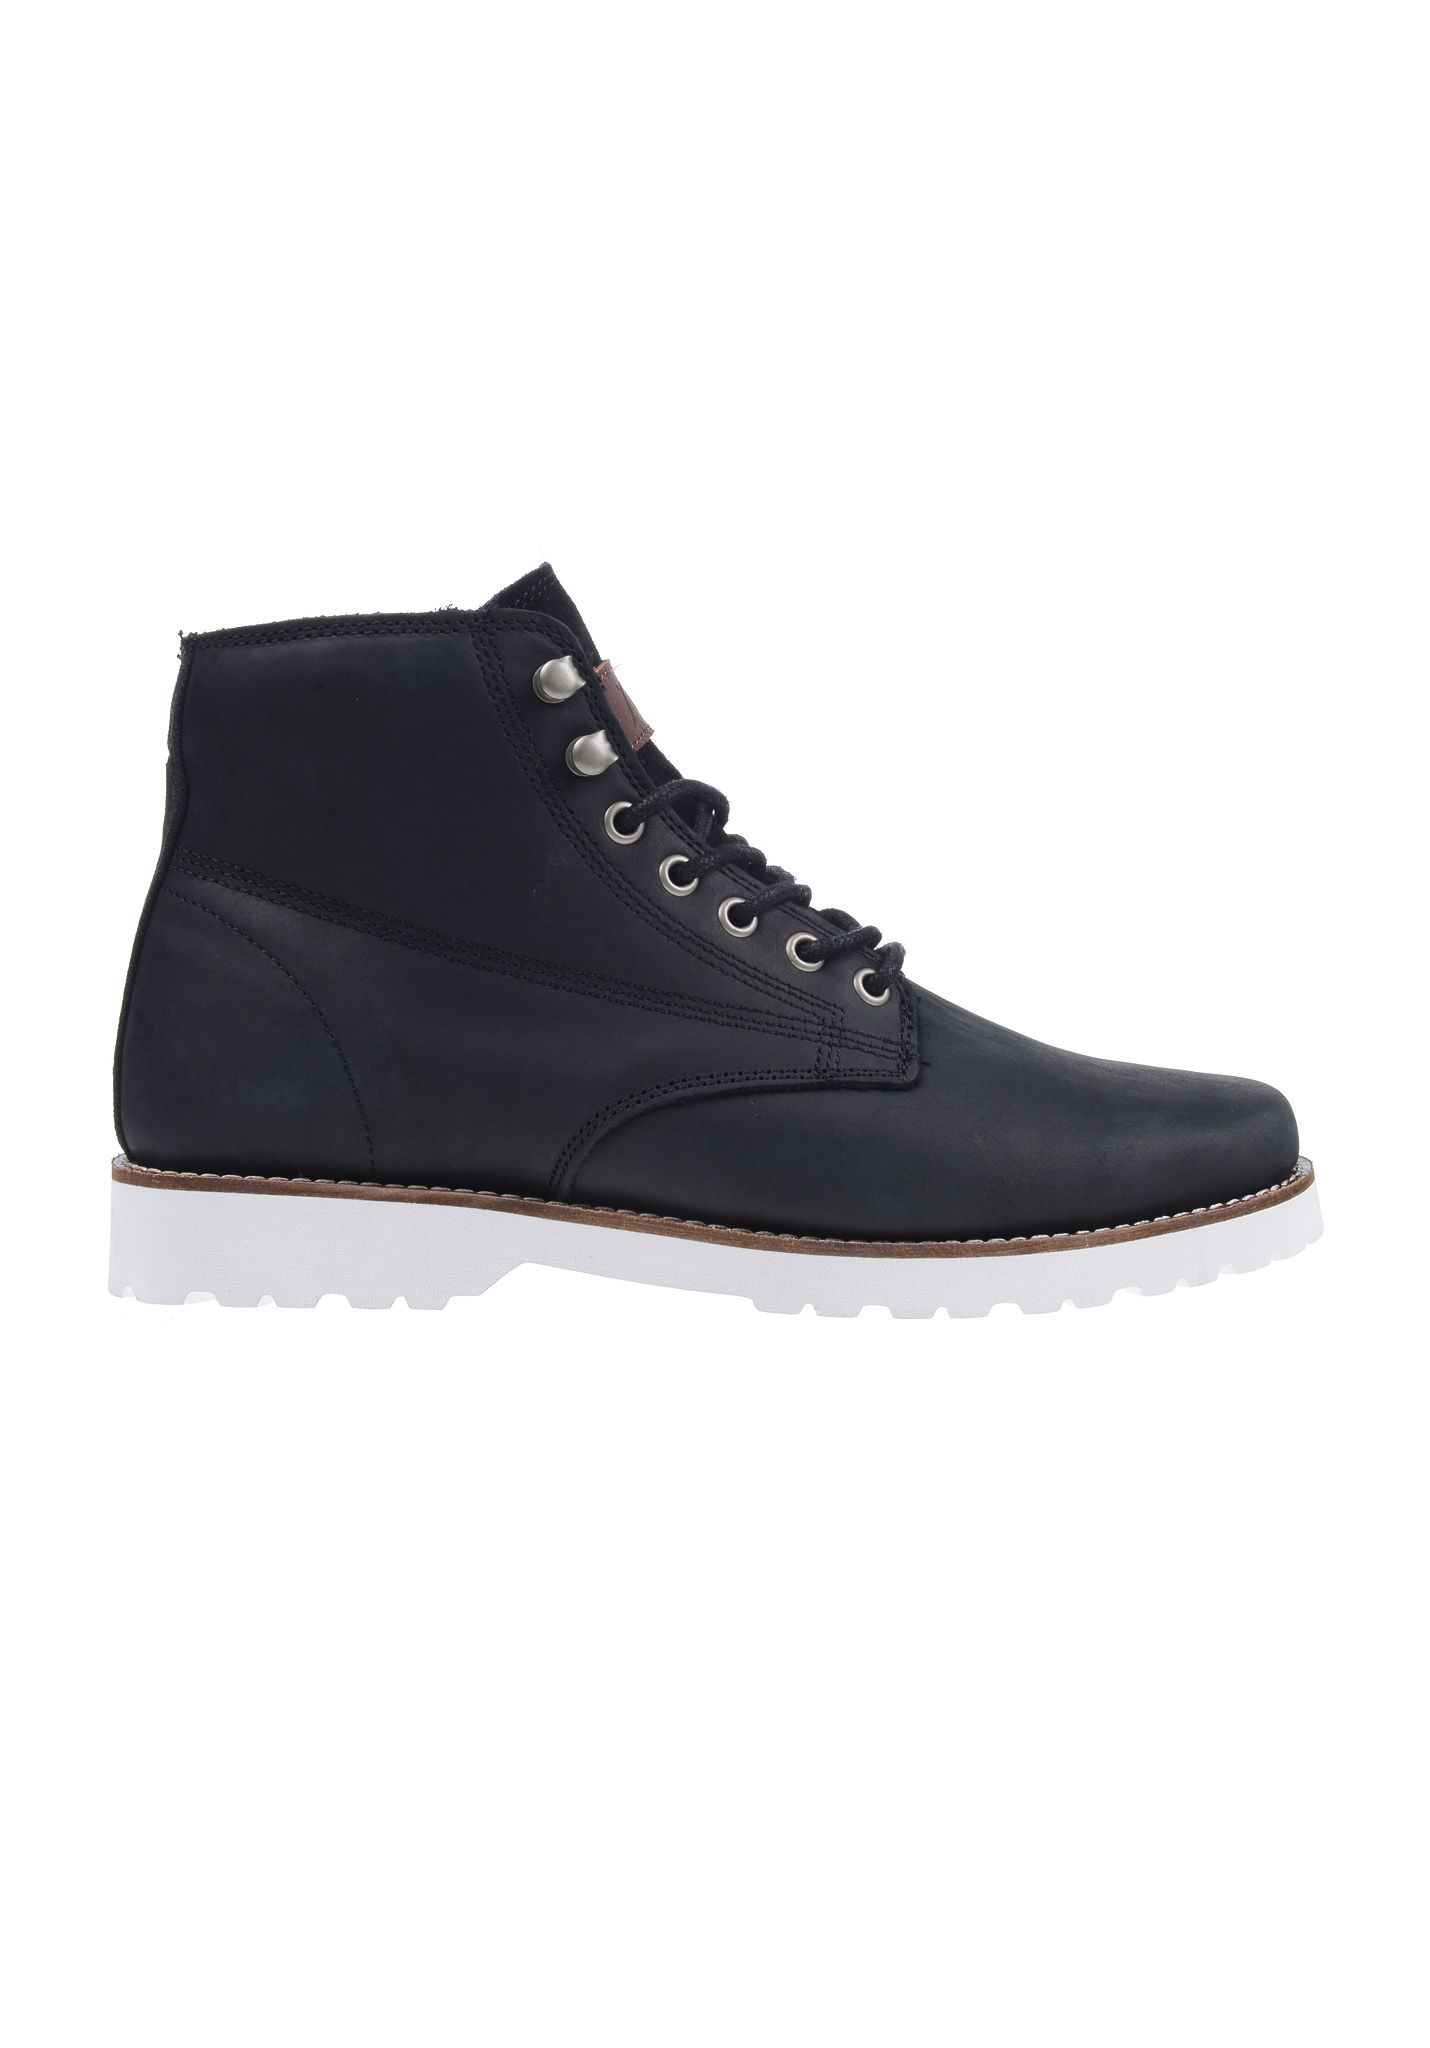 Quiksilver Gage- Black boots